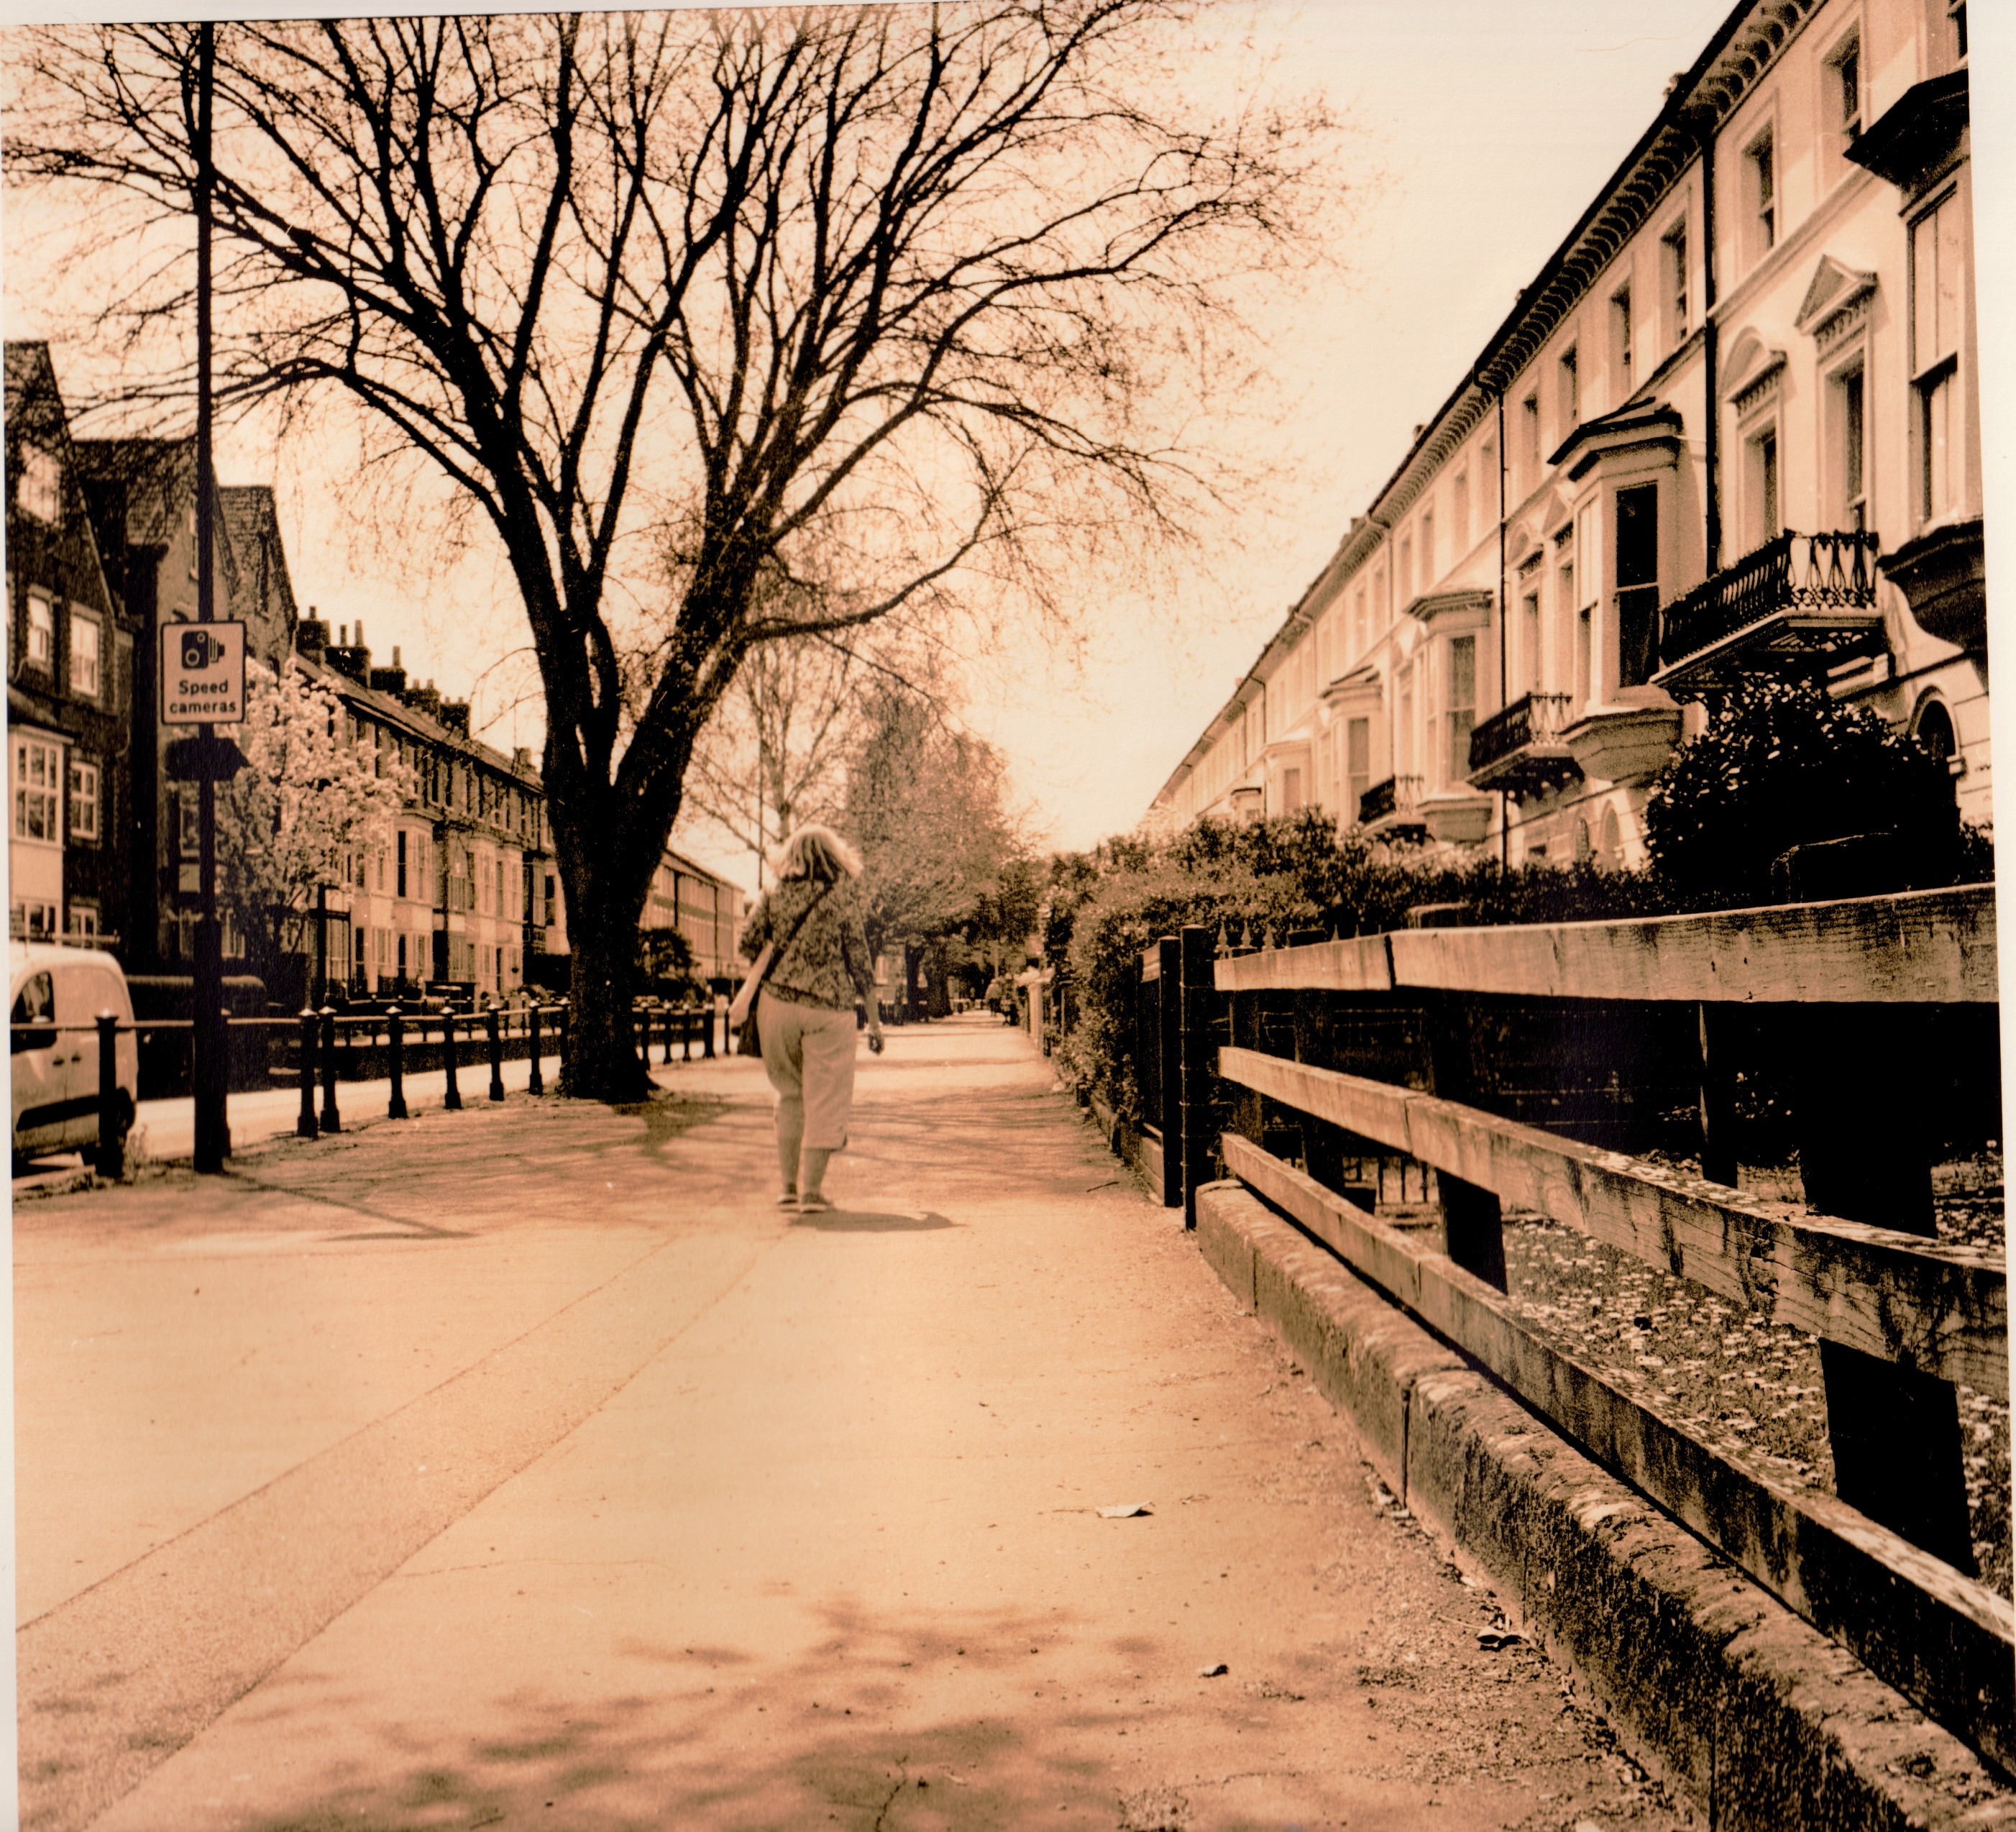 A lith print of a woman walking down a pavement with buildings either side.